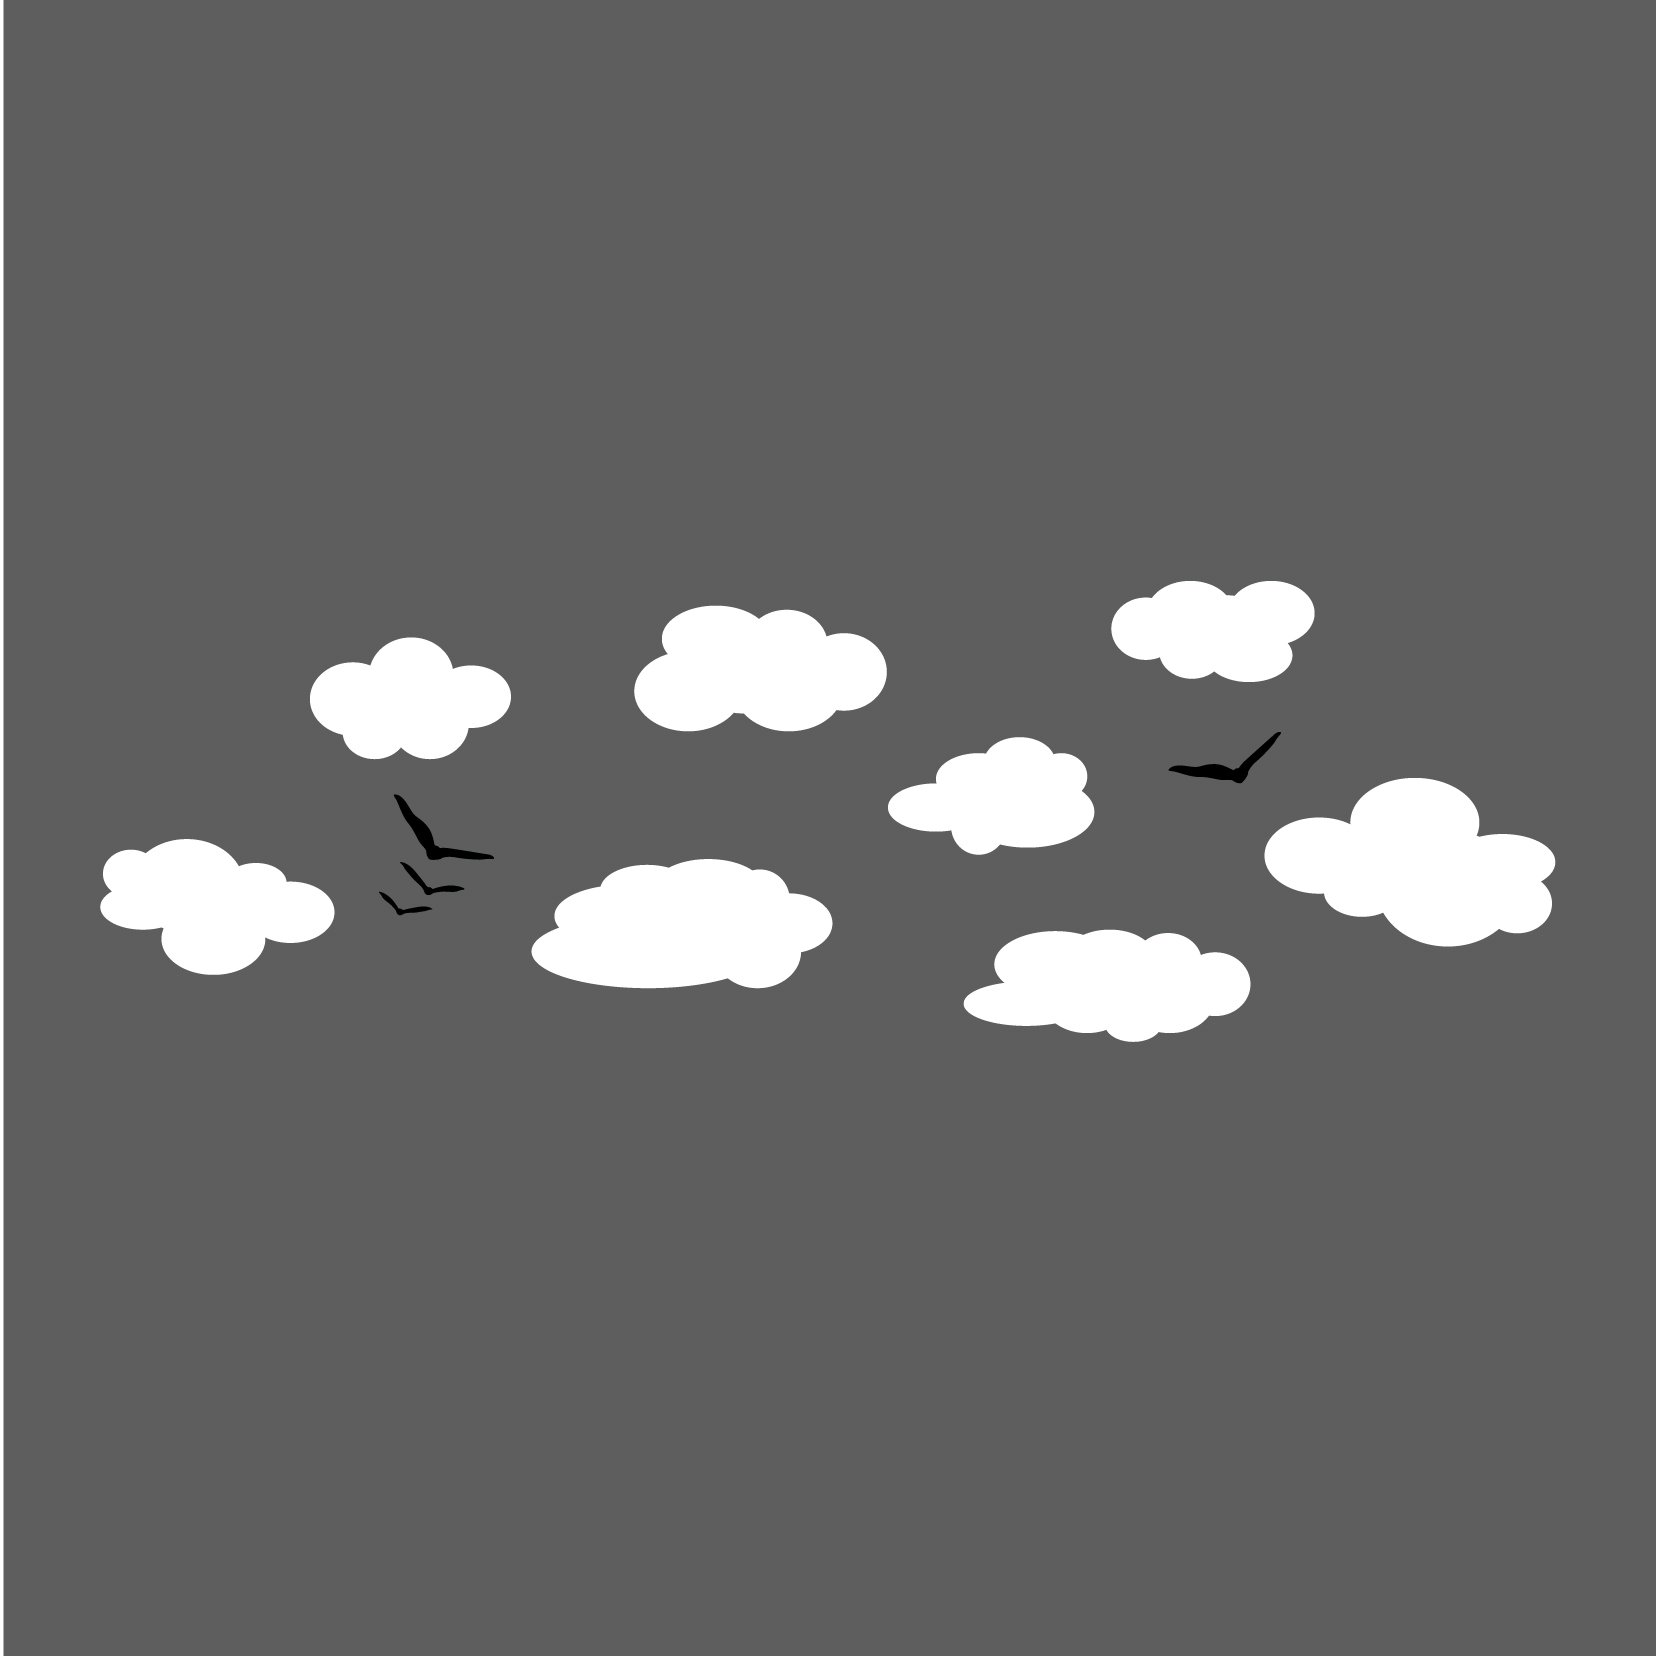 Clouds and Birds - Vinyl Wall Art Decal for Homes, Offices, Kids Rooms, Nurseries, Schools, High Schools, Colleges, Universities, Interior Designers, Architects, Remodelers